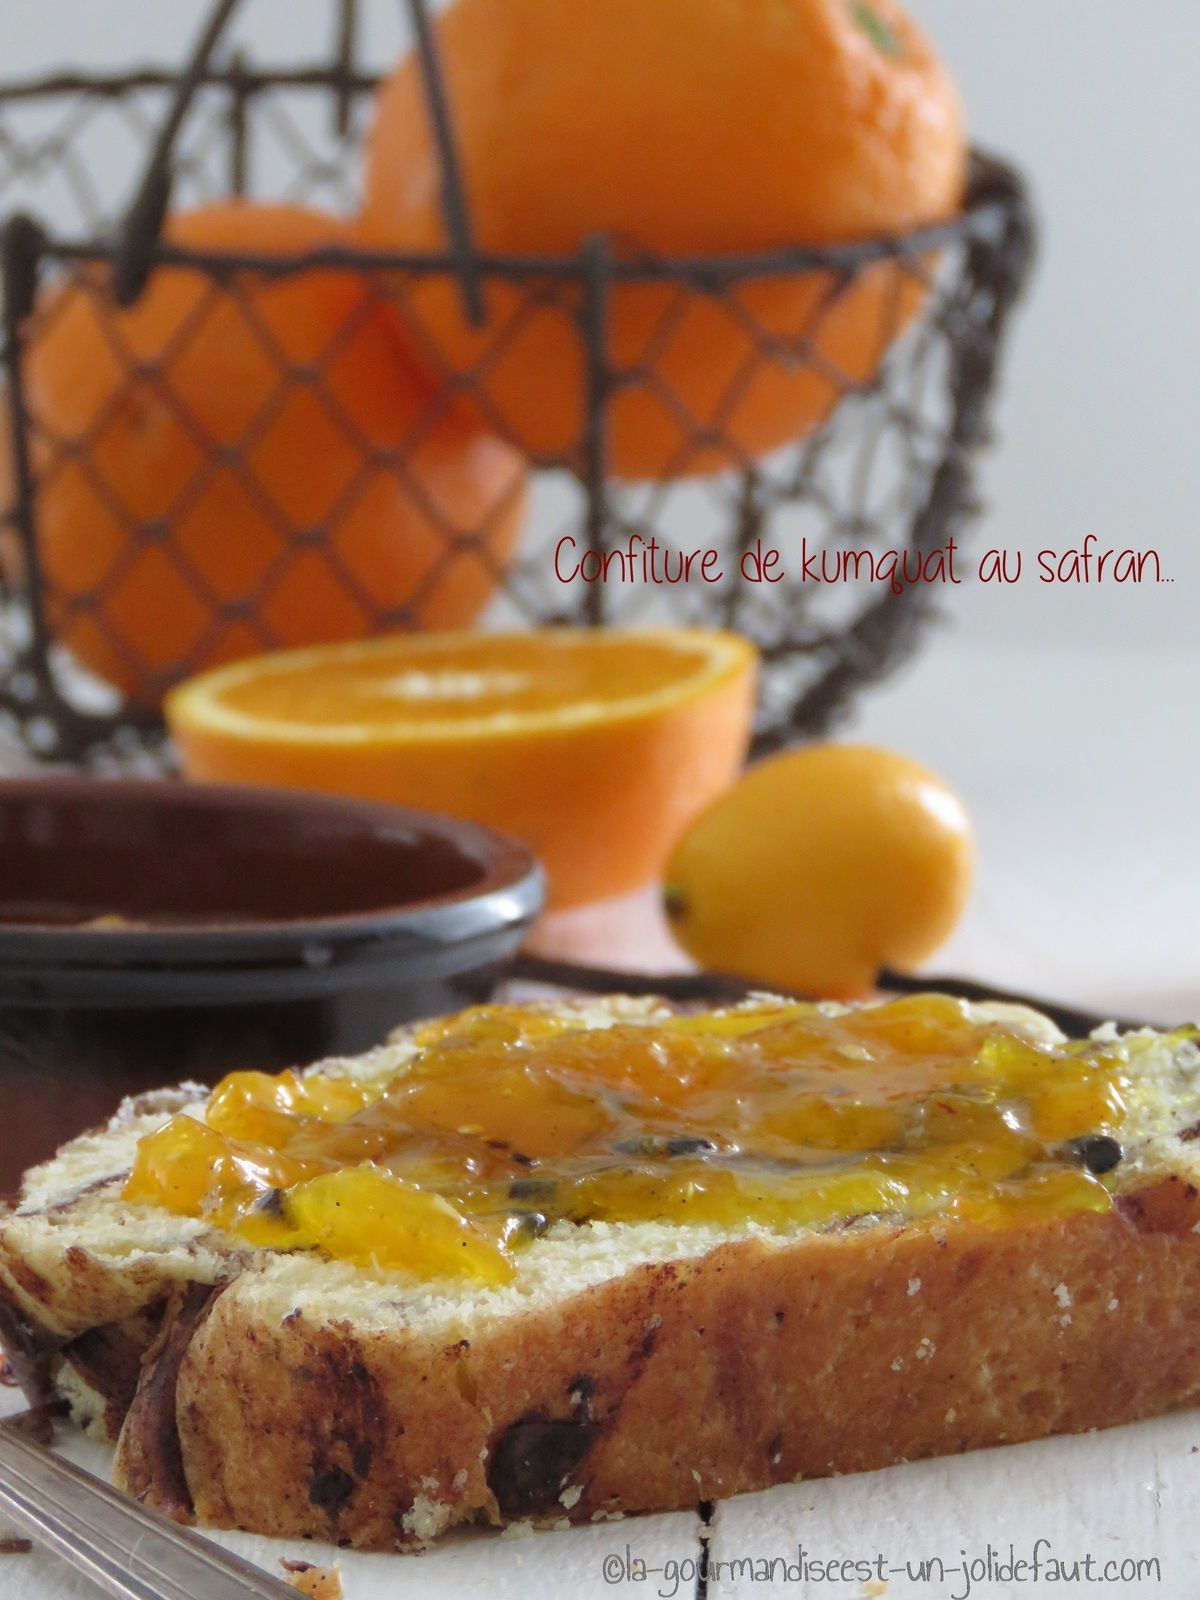 Confiture de kumquat au safran et fruit de la passion